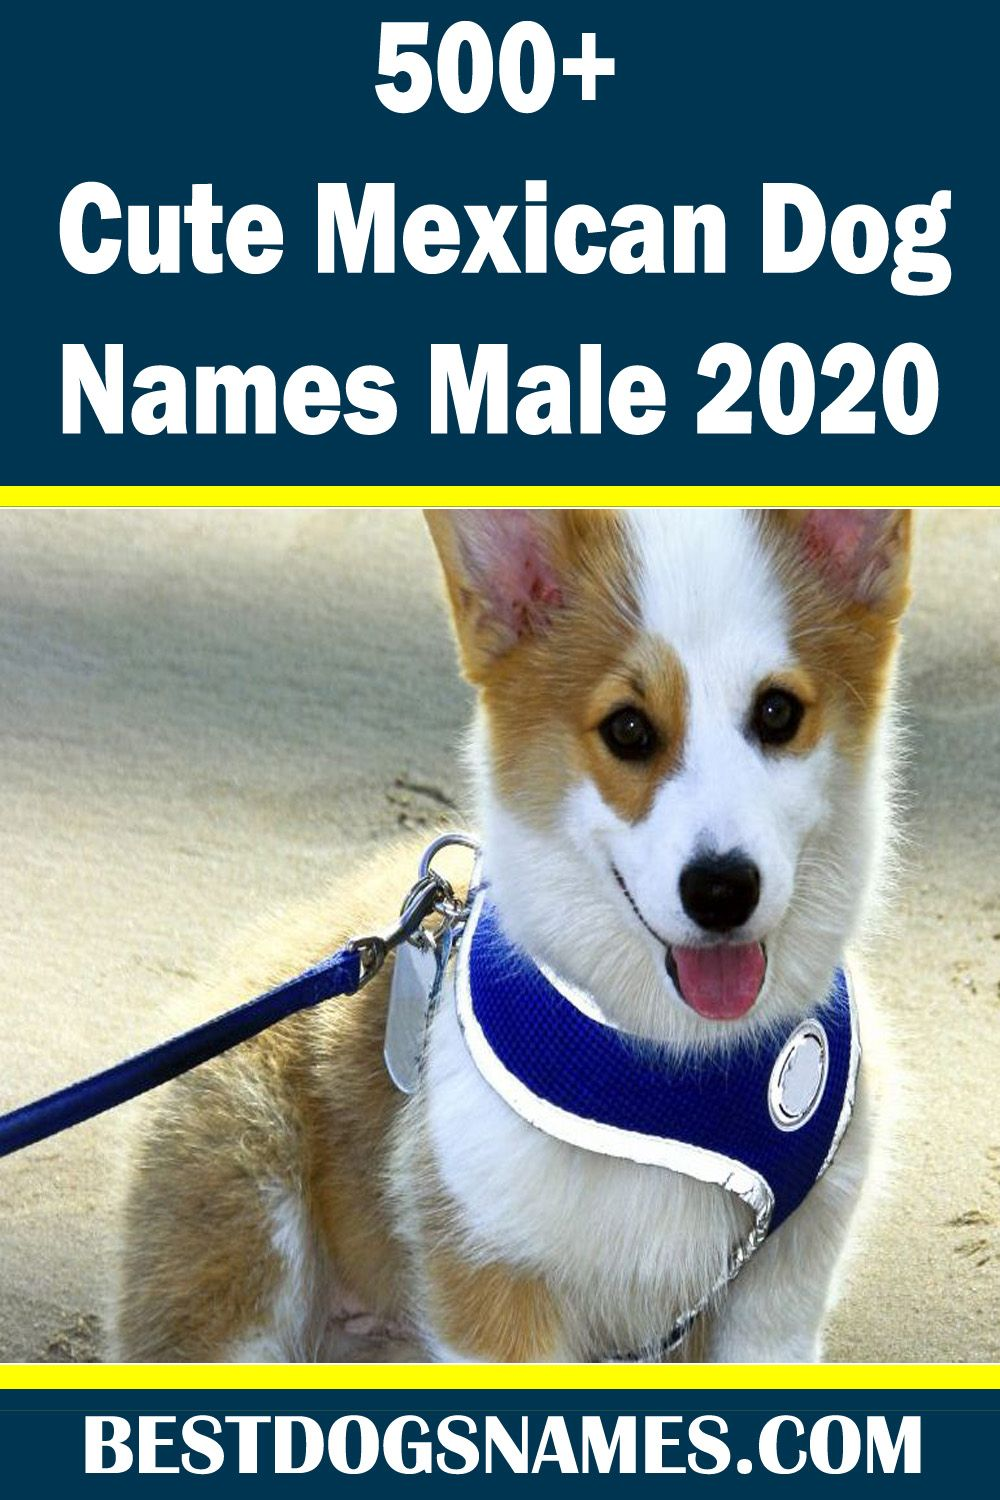 Looking For The Cute Mexican Dog Names Male Then Feel Welcome